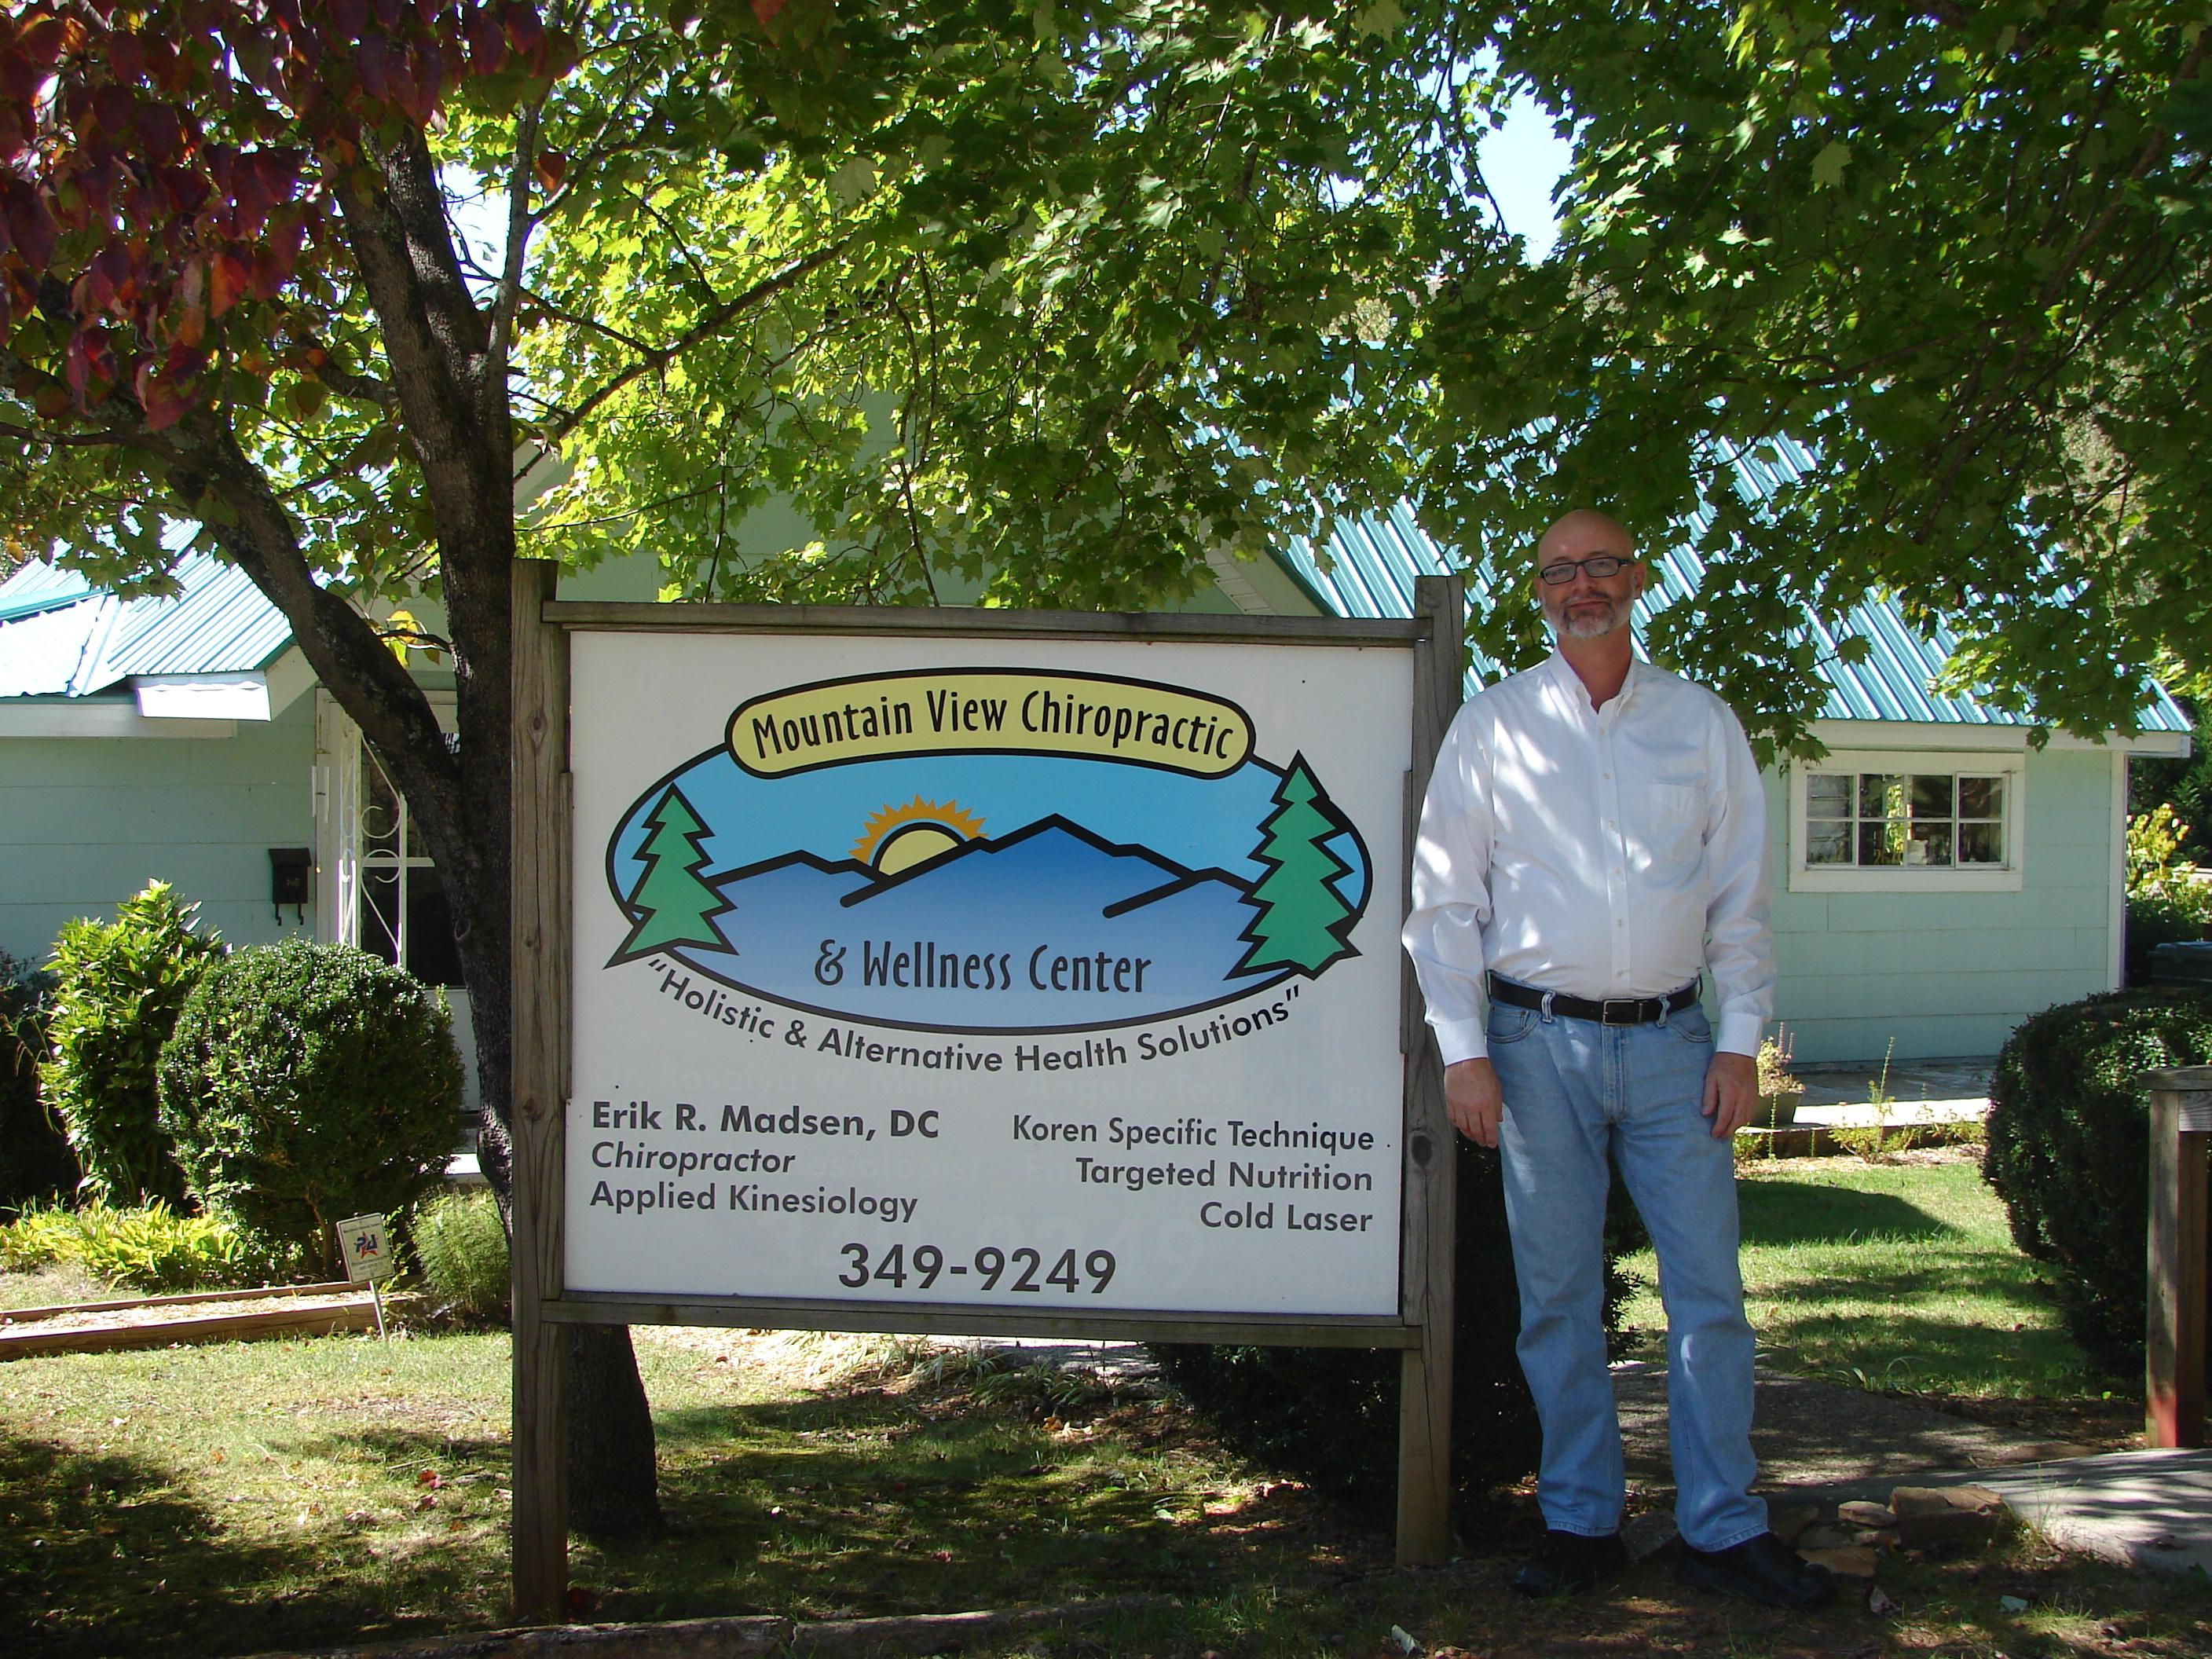 Mountain View Chiropractic and Wellness Center